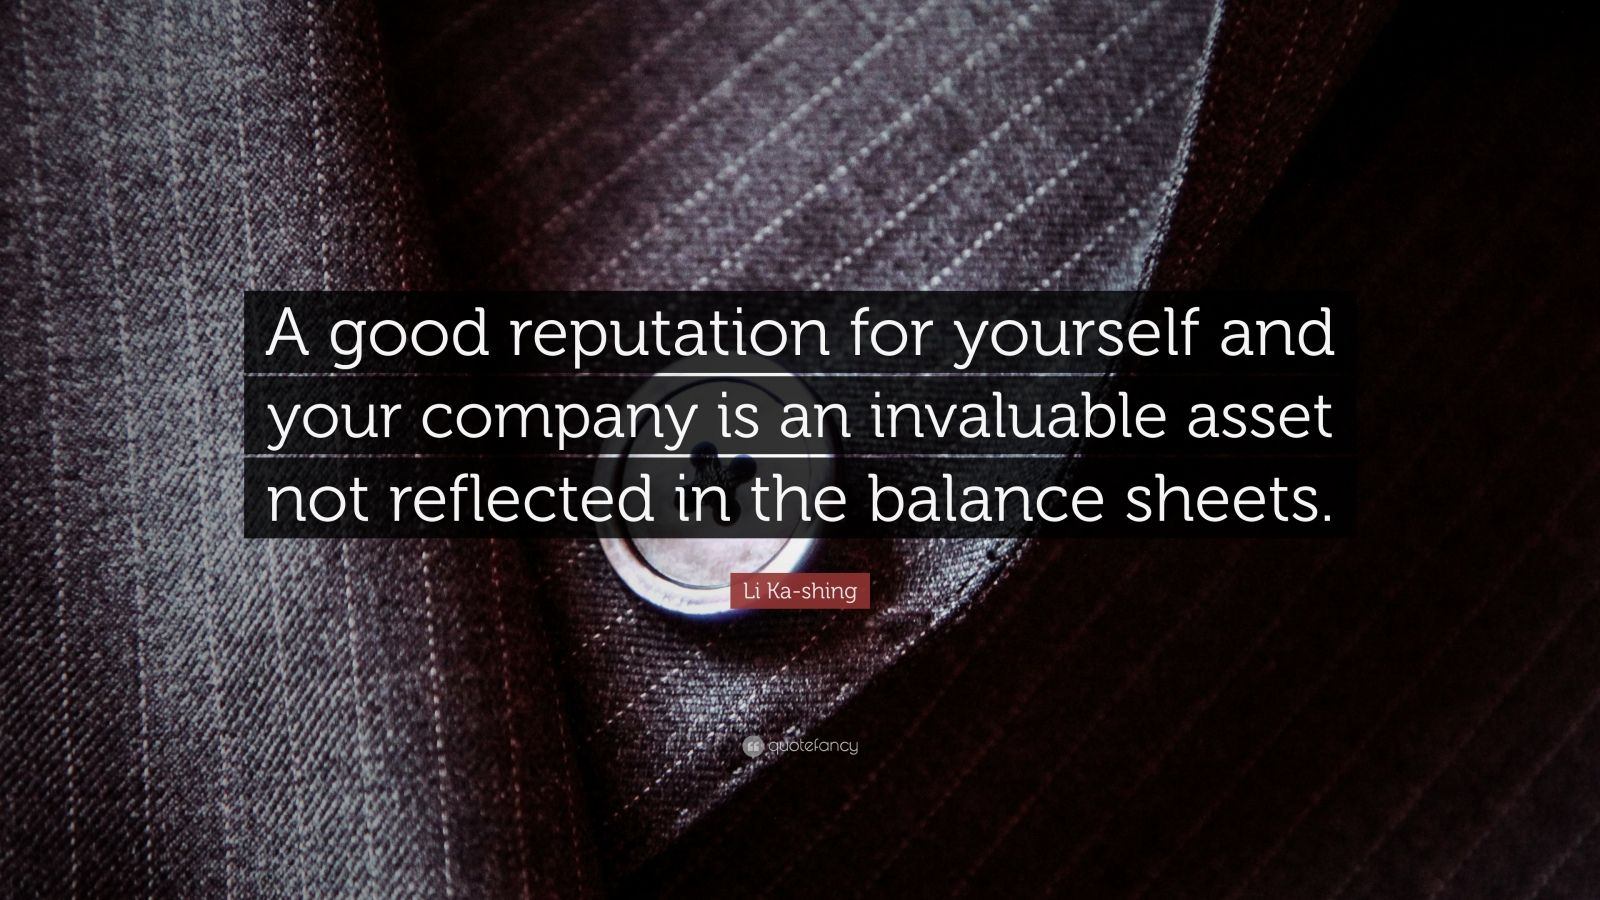 """Li Ka-shing Quote: """"A good reputation for yourself and your company is an invaluable asset not reflected in the balance sheets."""""""